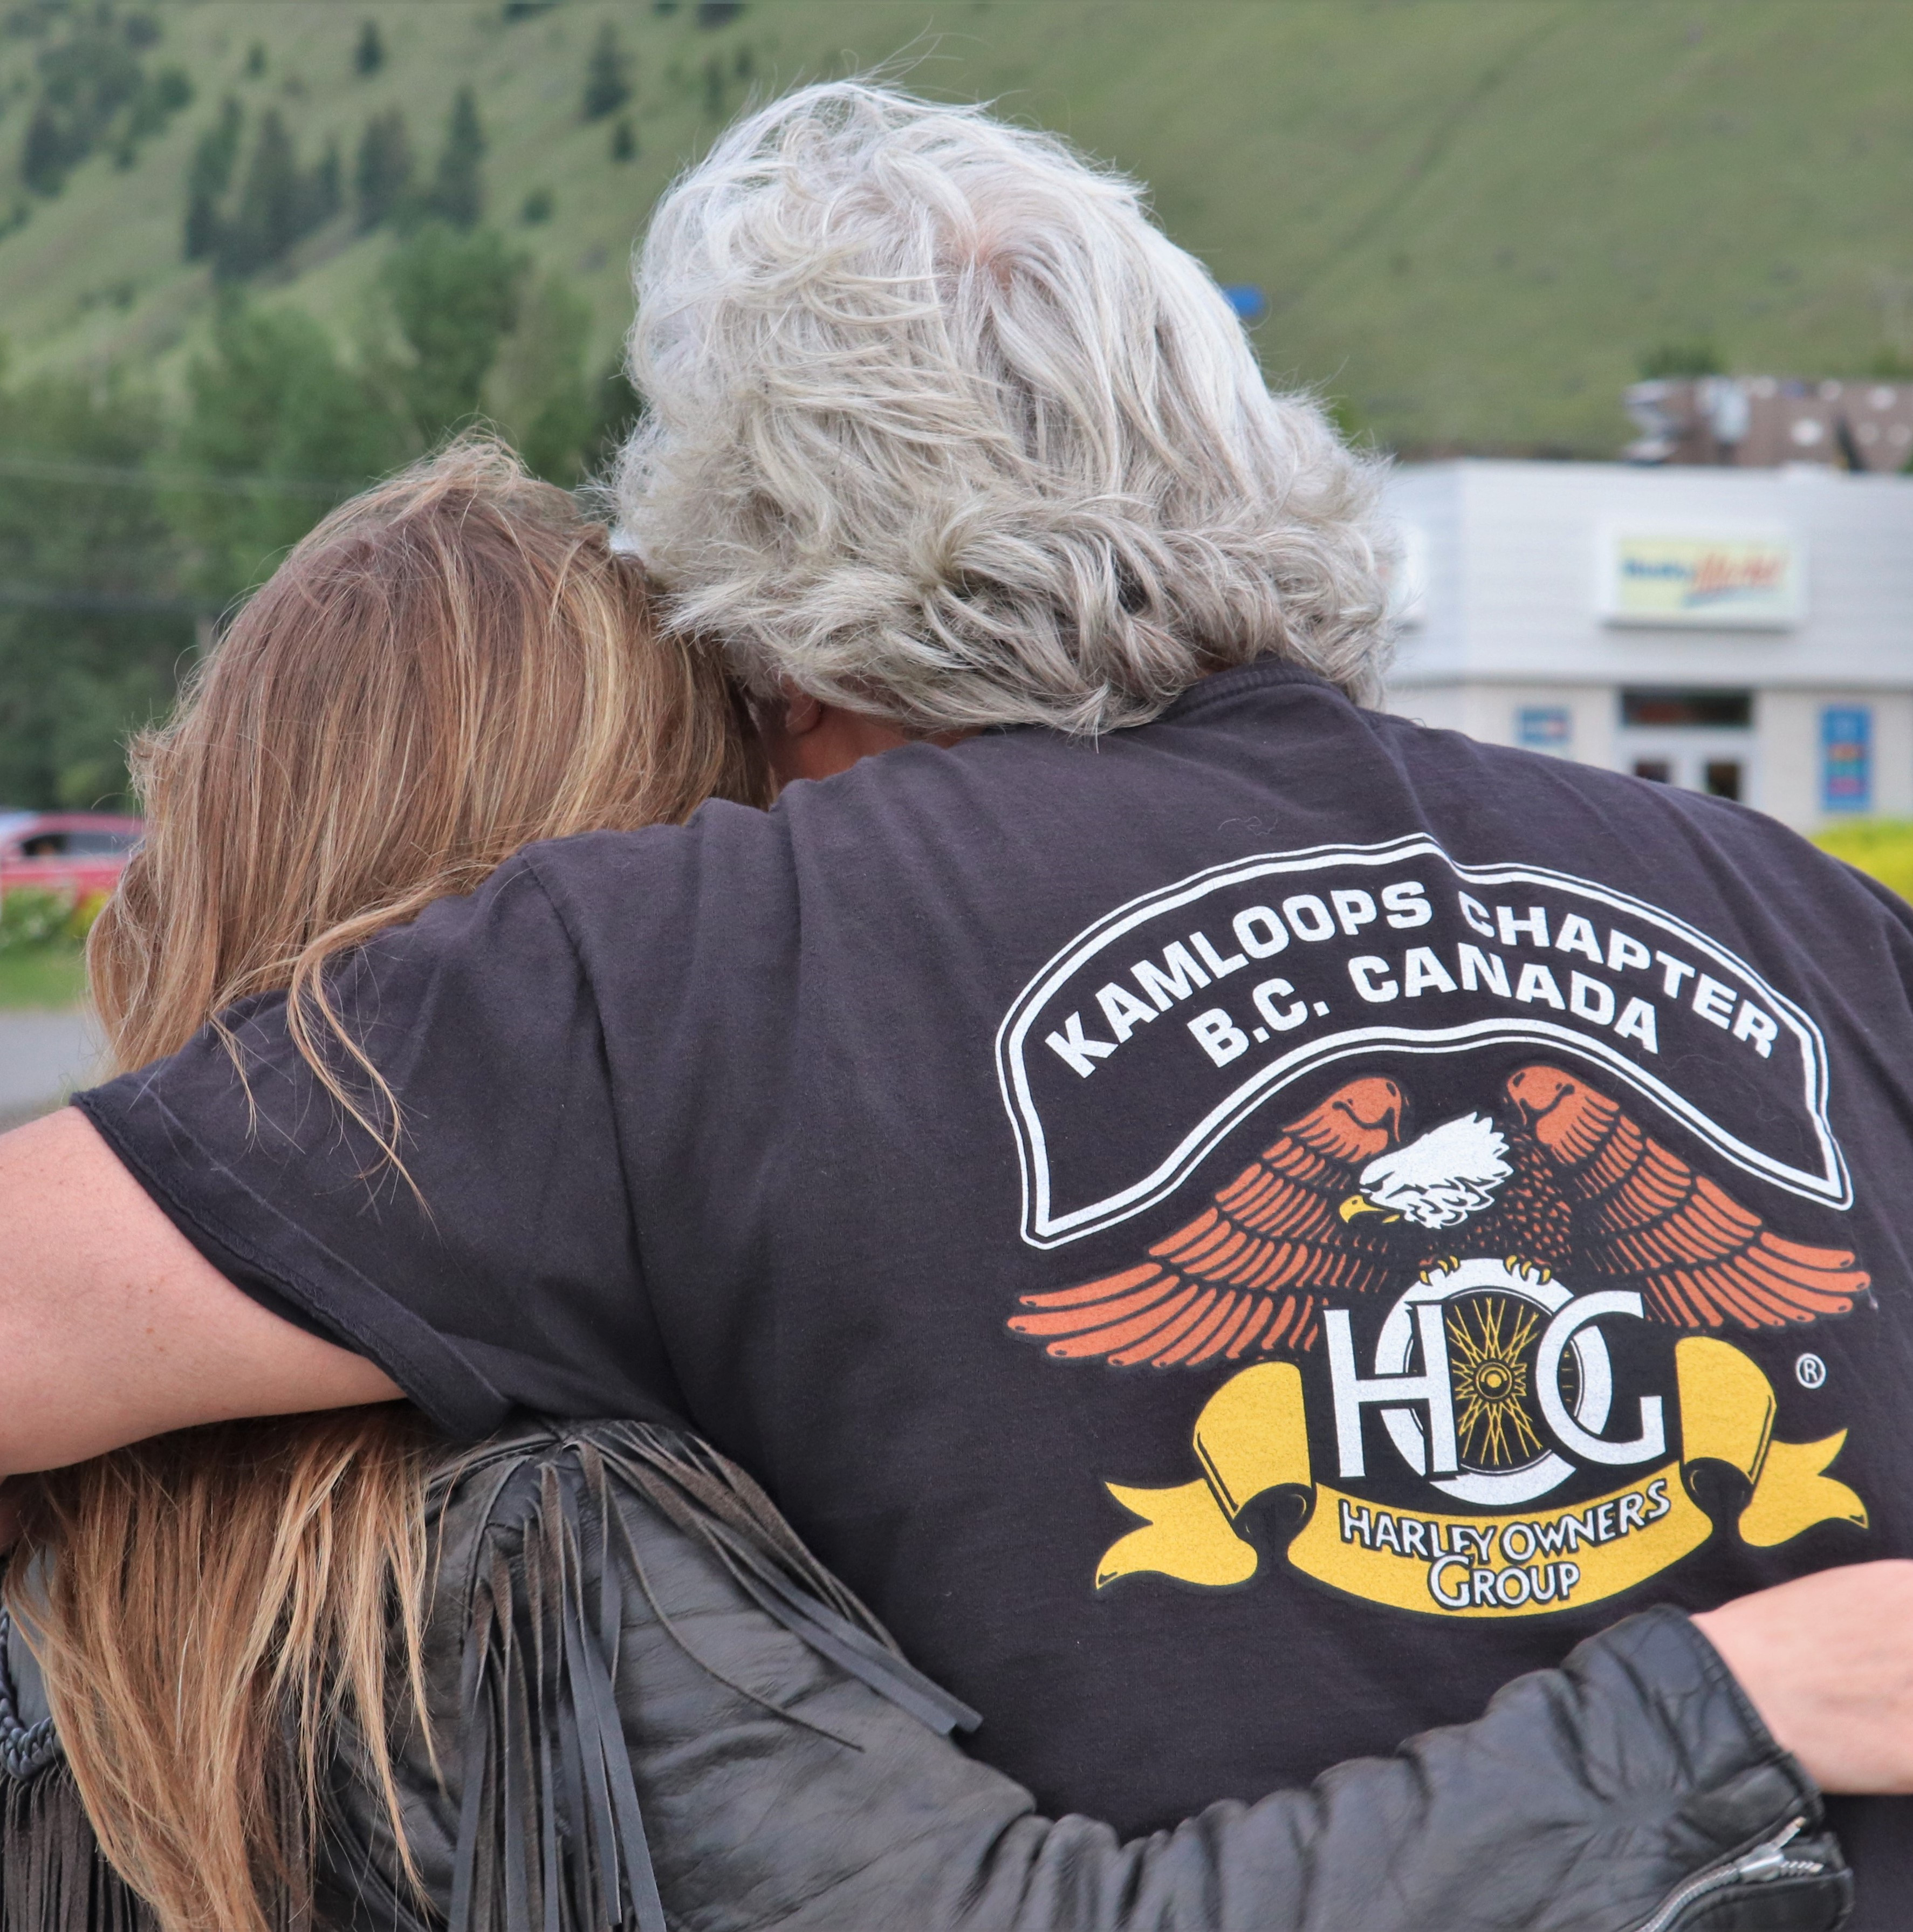 Sandei Marshall died while riding her motorcycle May 13; local riders held a tribute to their fallen colleague  yesterday.